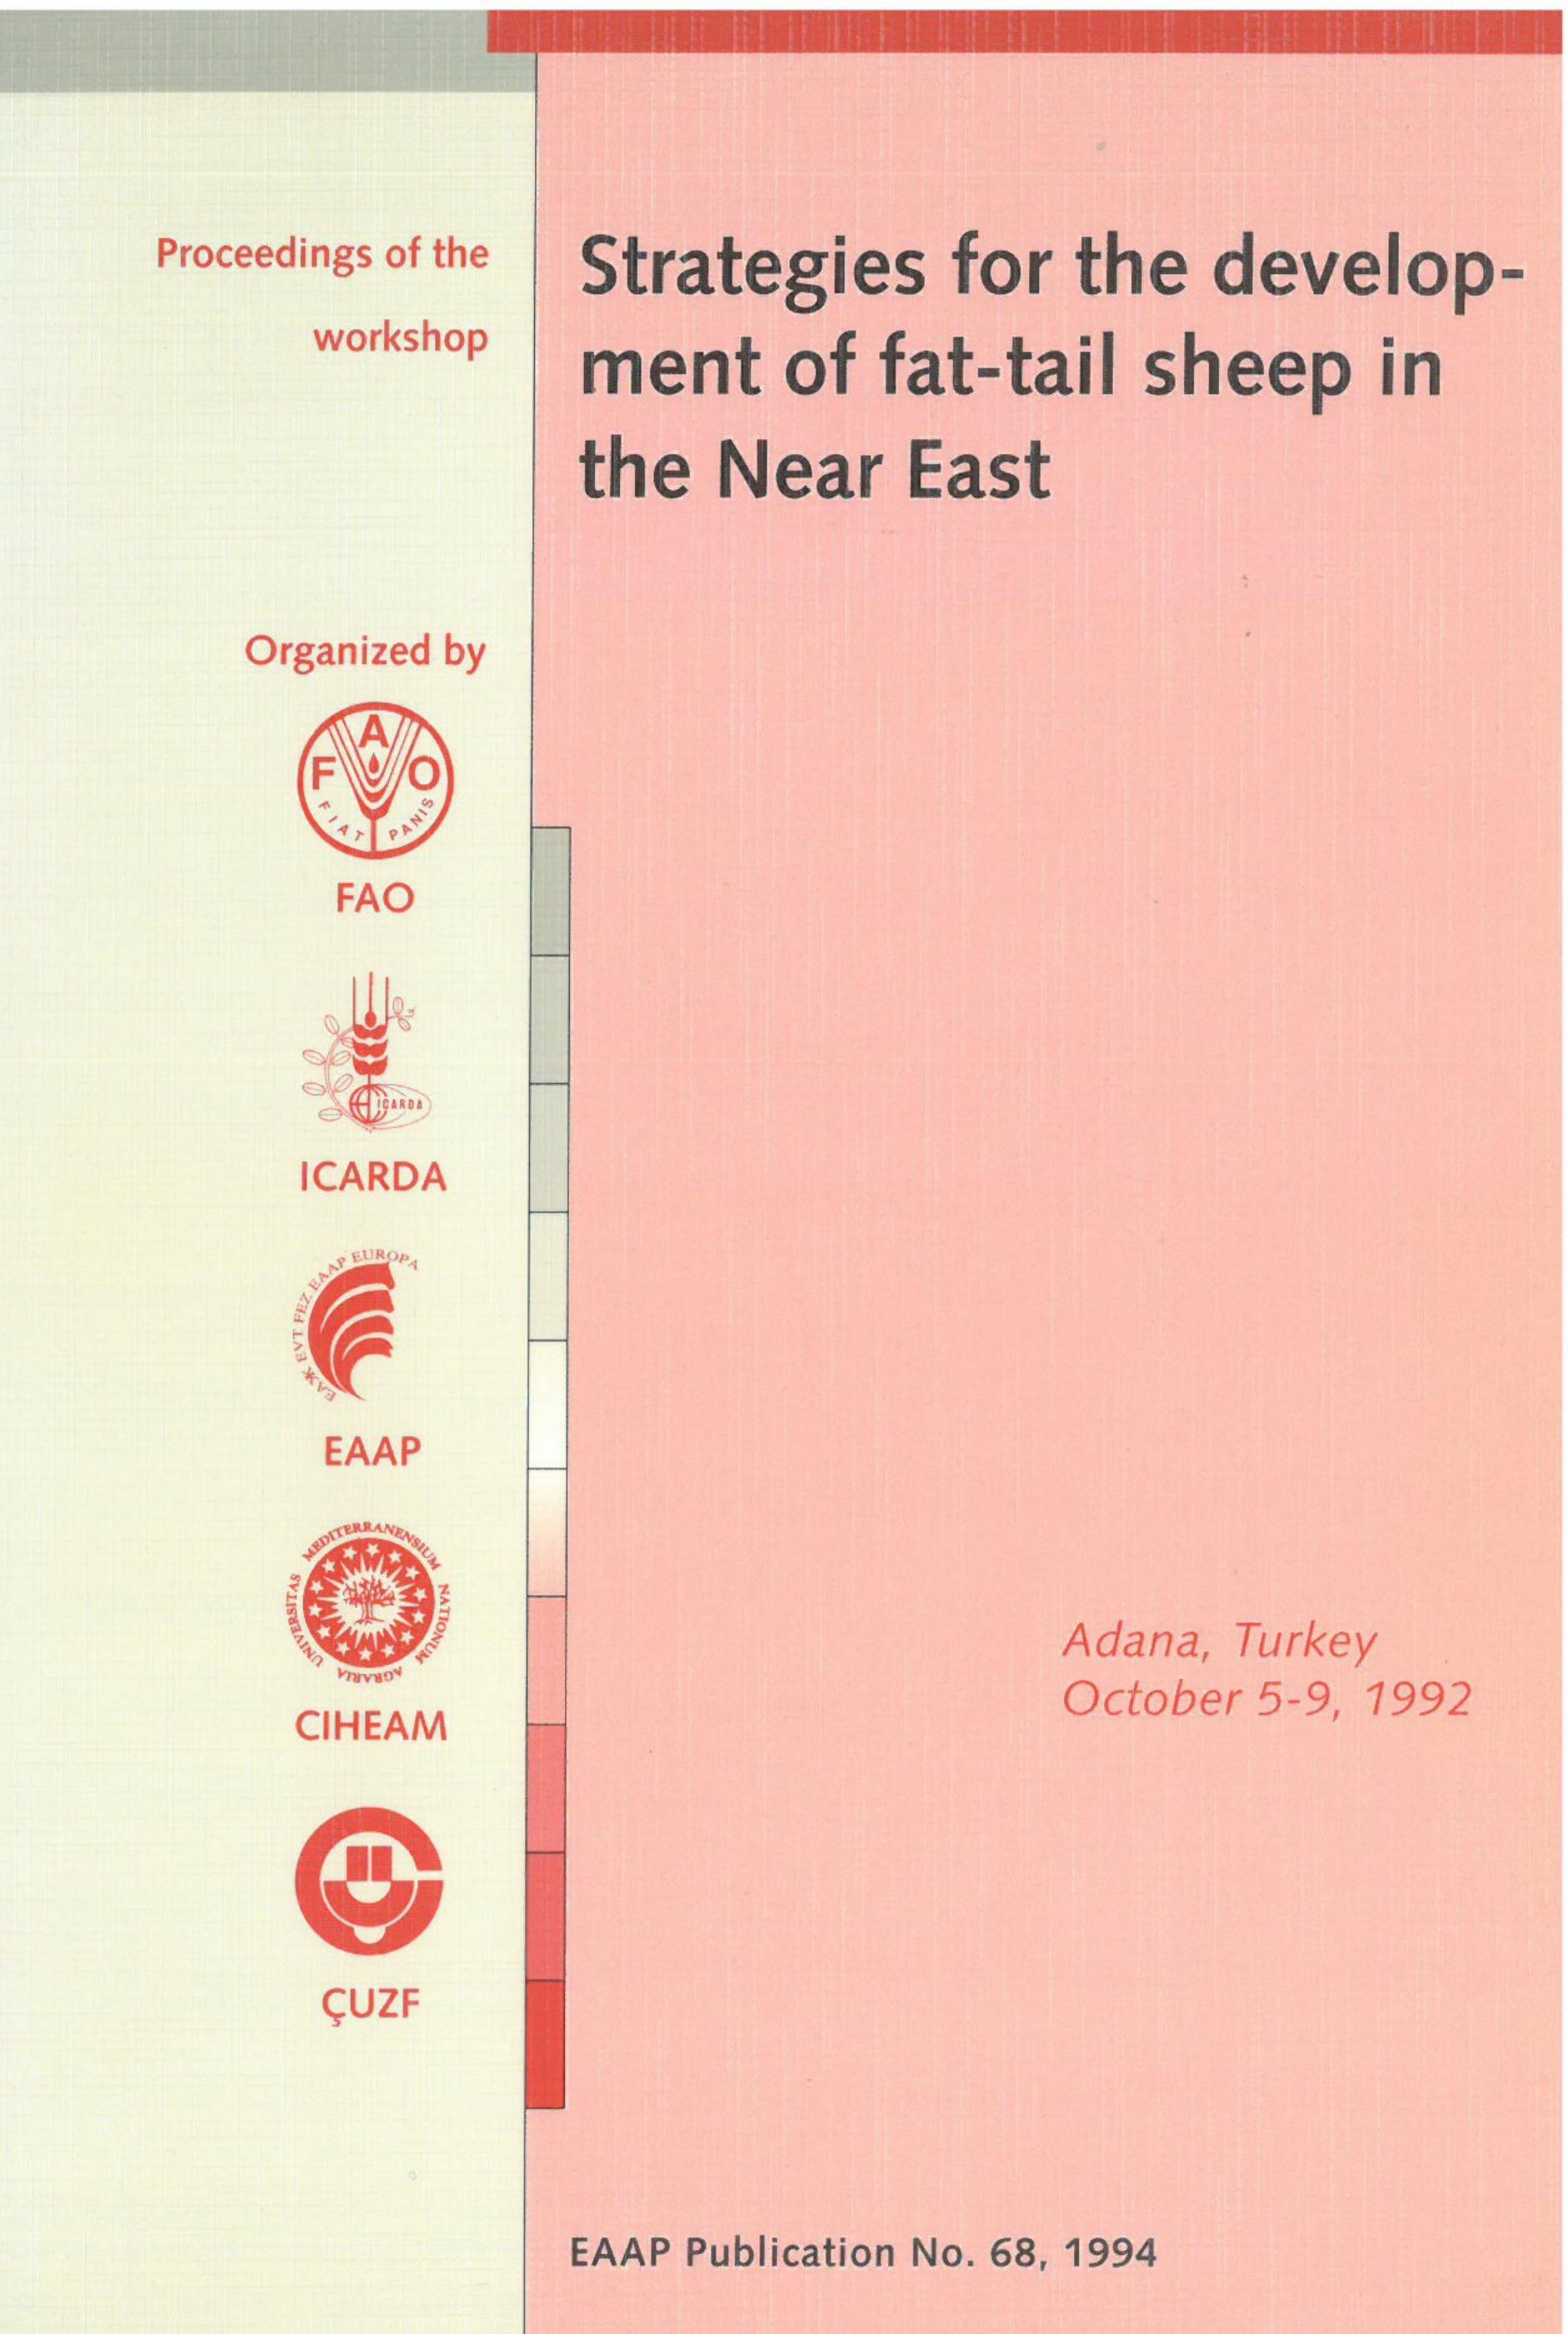 Strategies for the development of fat-tail sheep in the Near East